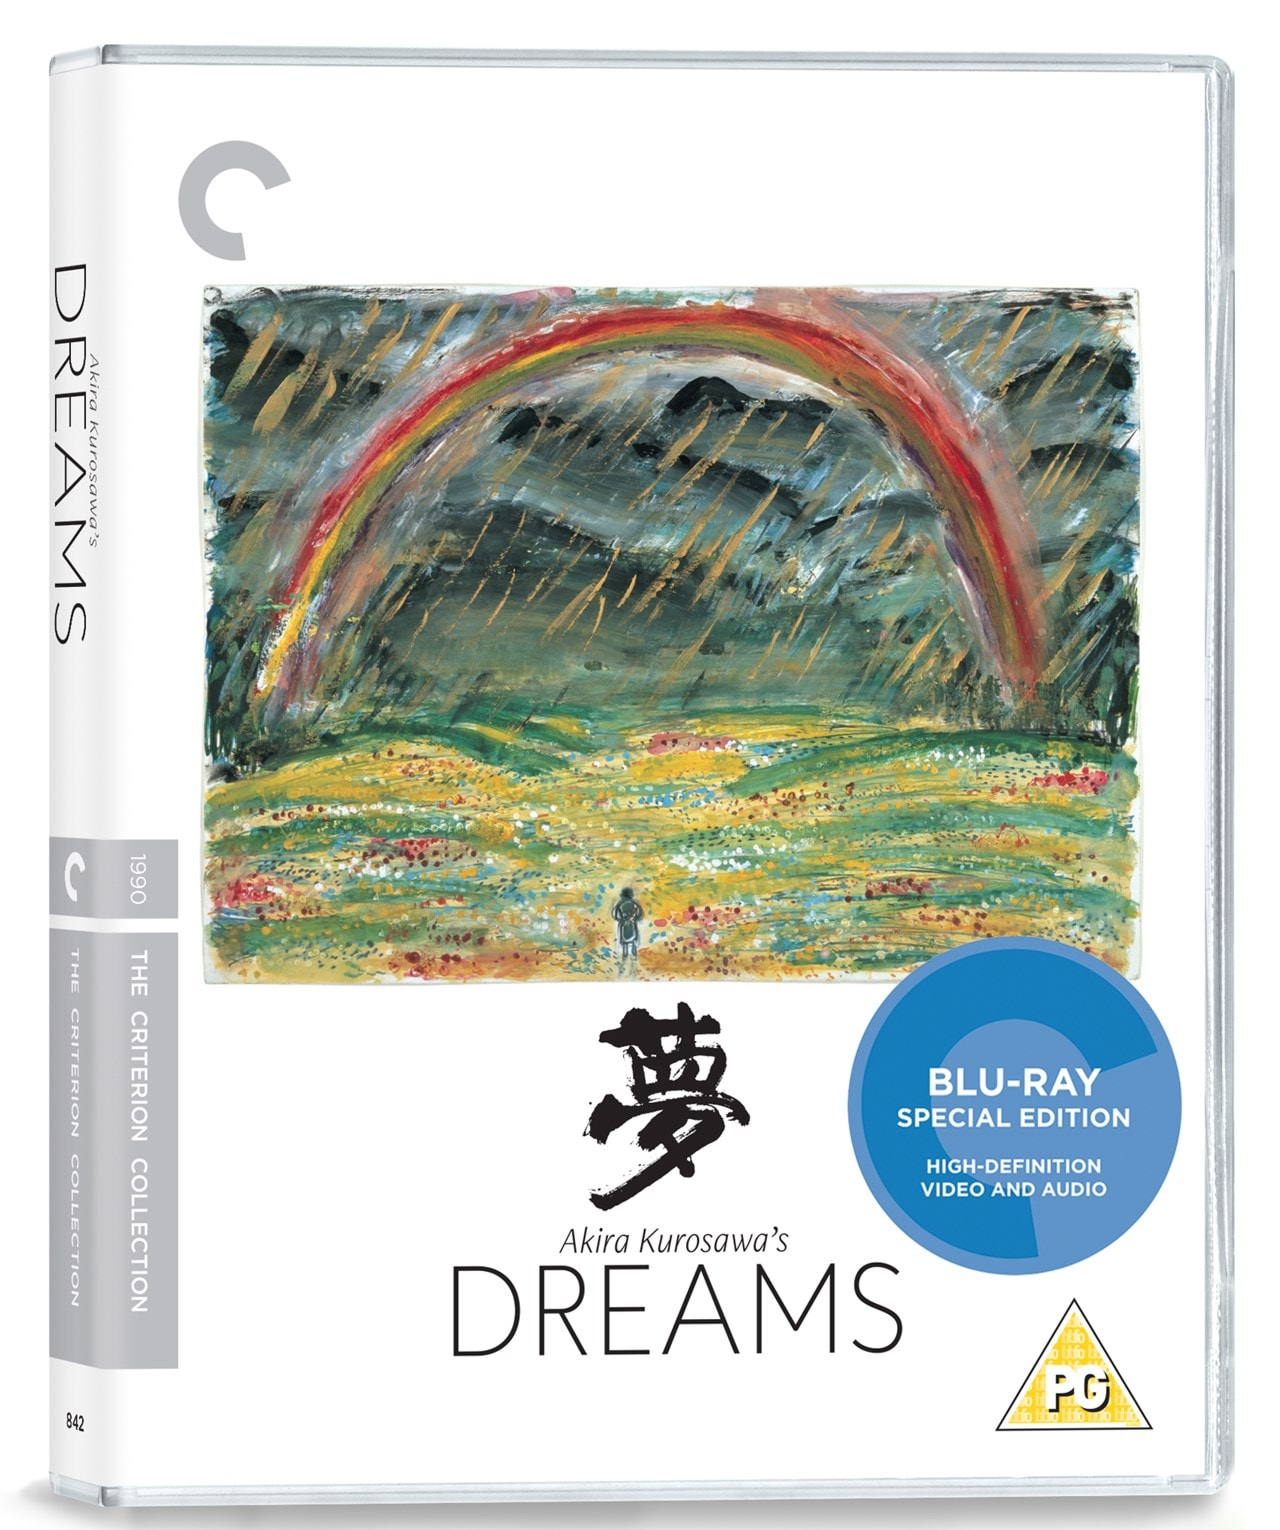 Akira Kurosawa's Dreams - The Criterion Collection - 2